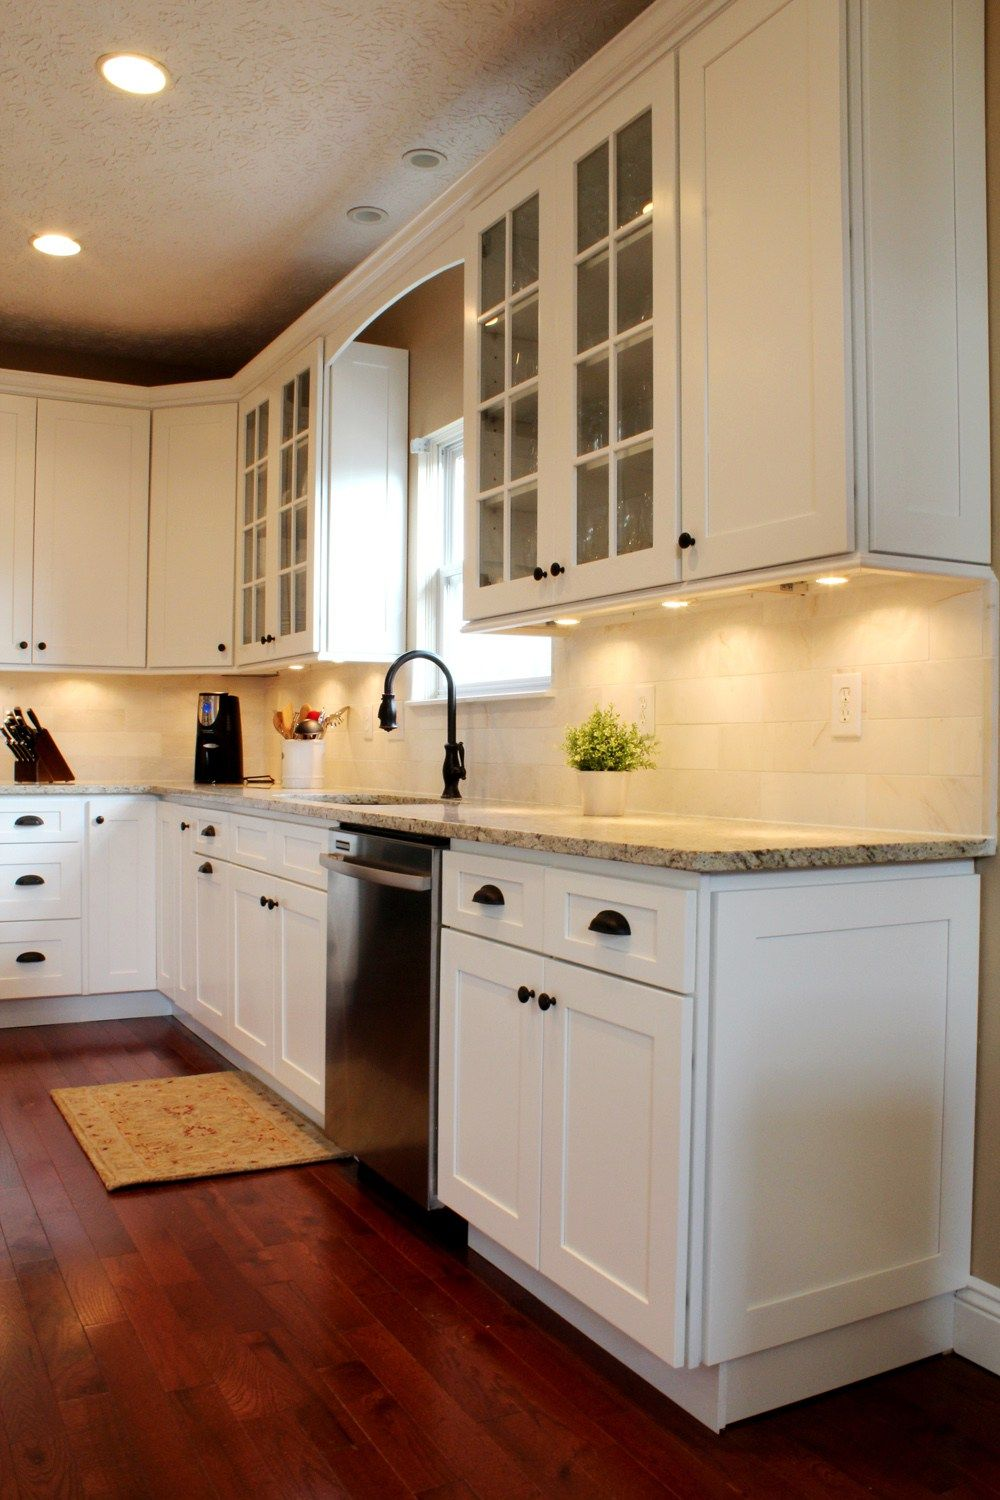 A Modern Ice White Shaker Cabinet Really Brings Out The Best In Kitchen Remodel